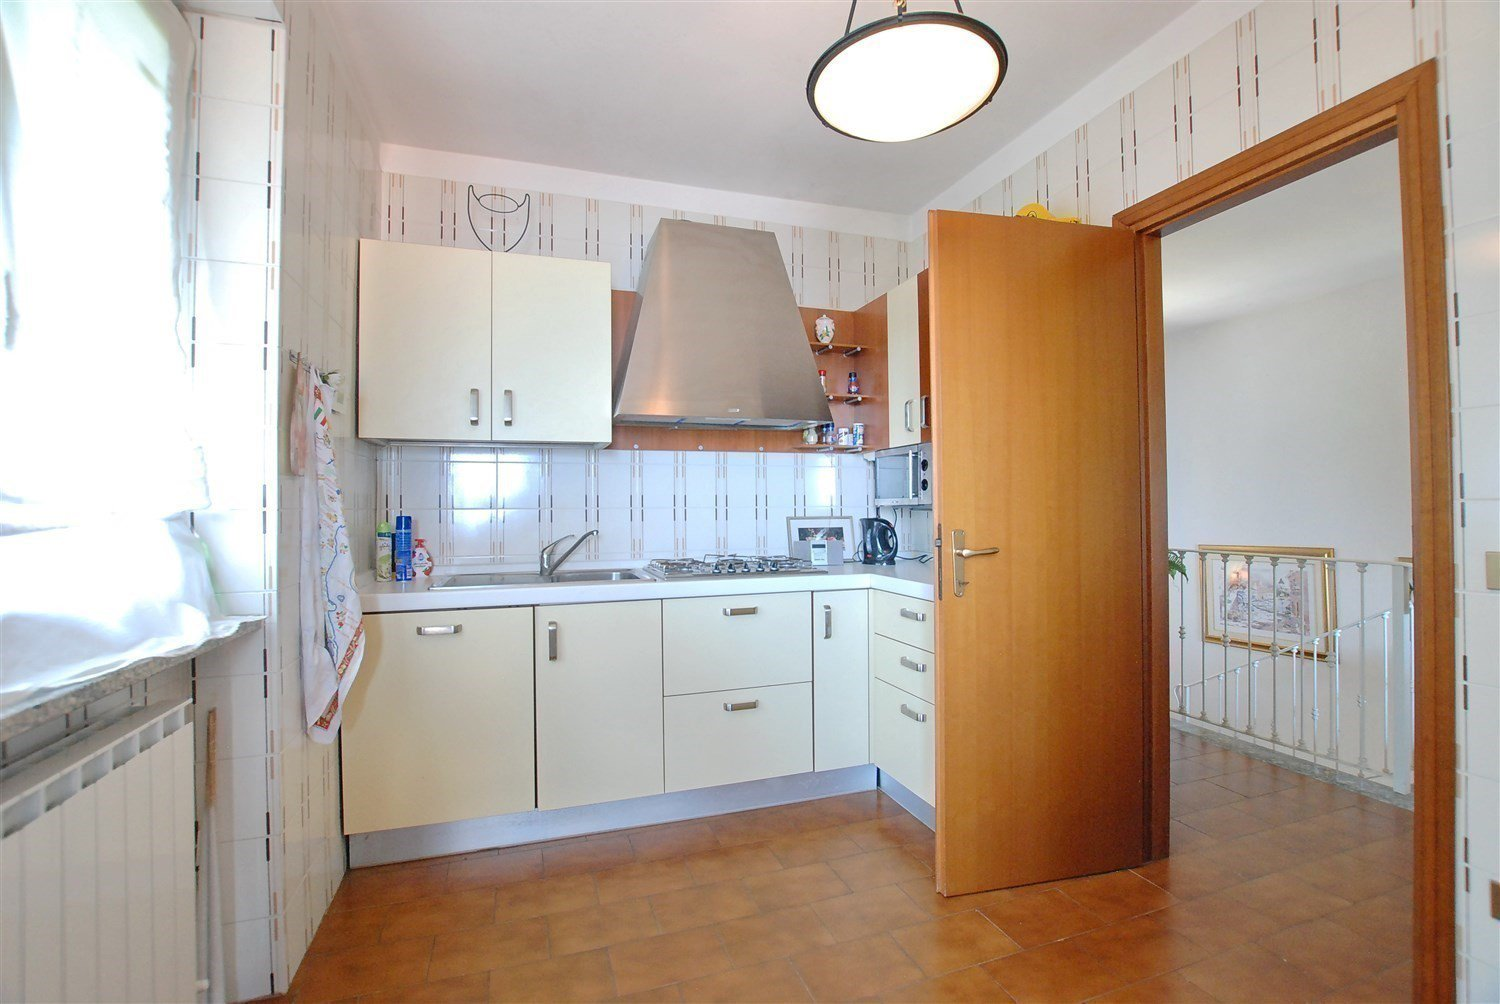 Villa for sale on the hill of Stresa with lake view- kitchen